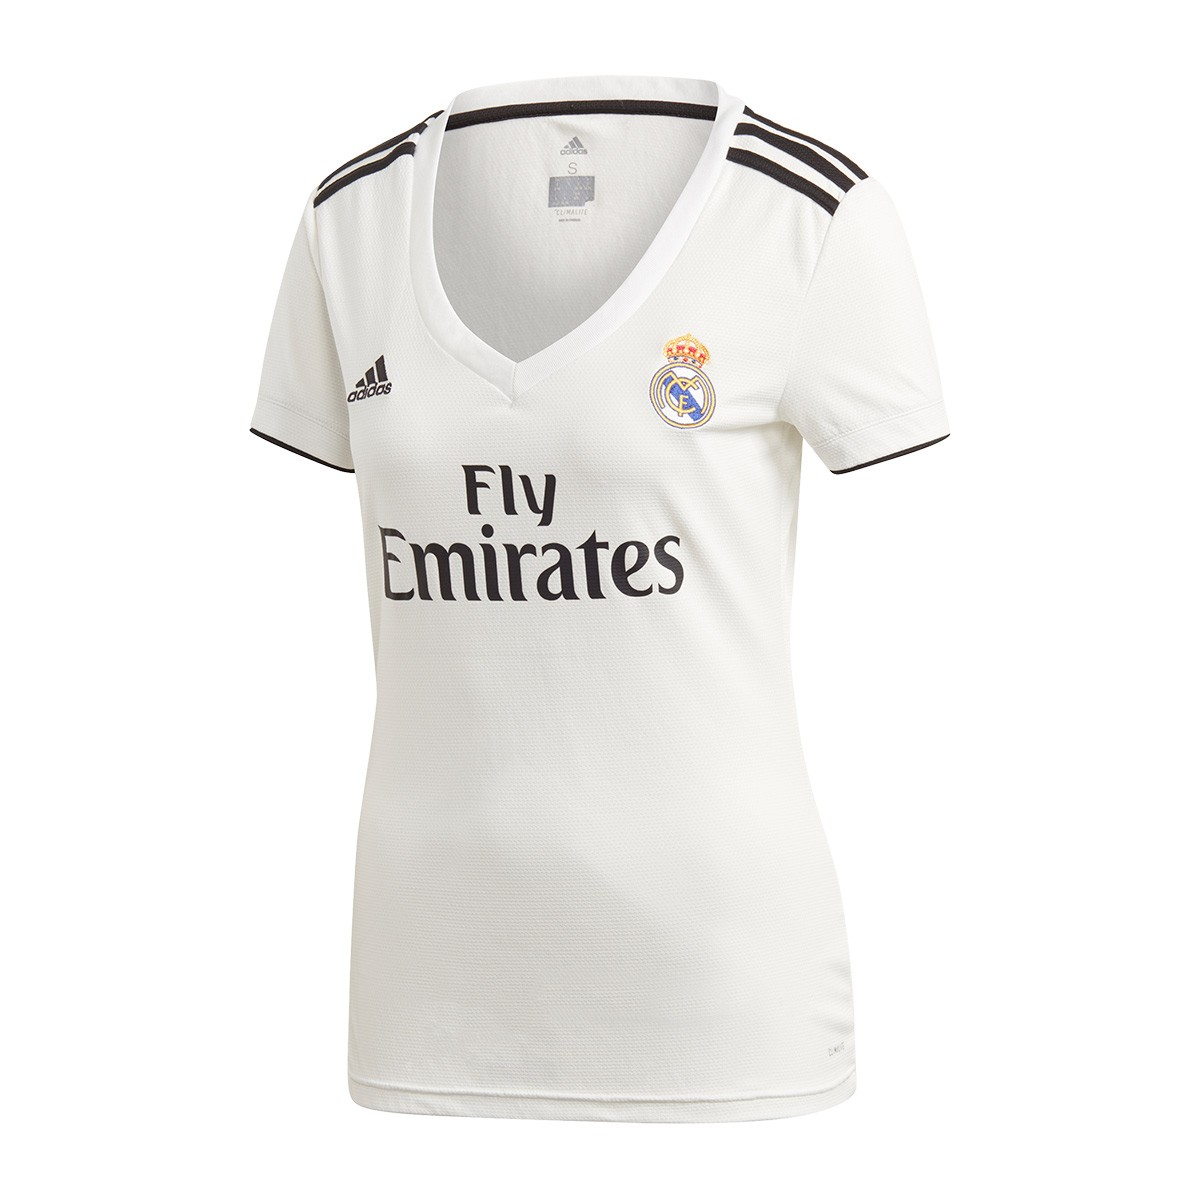 c8838549e96 Jersey adidas Woman Real Madrid 2018-2019 Home White-black ...